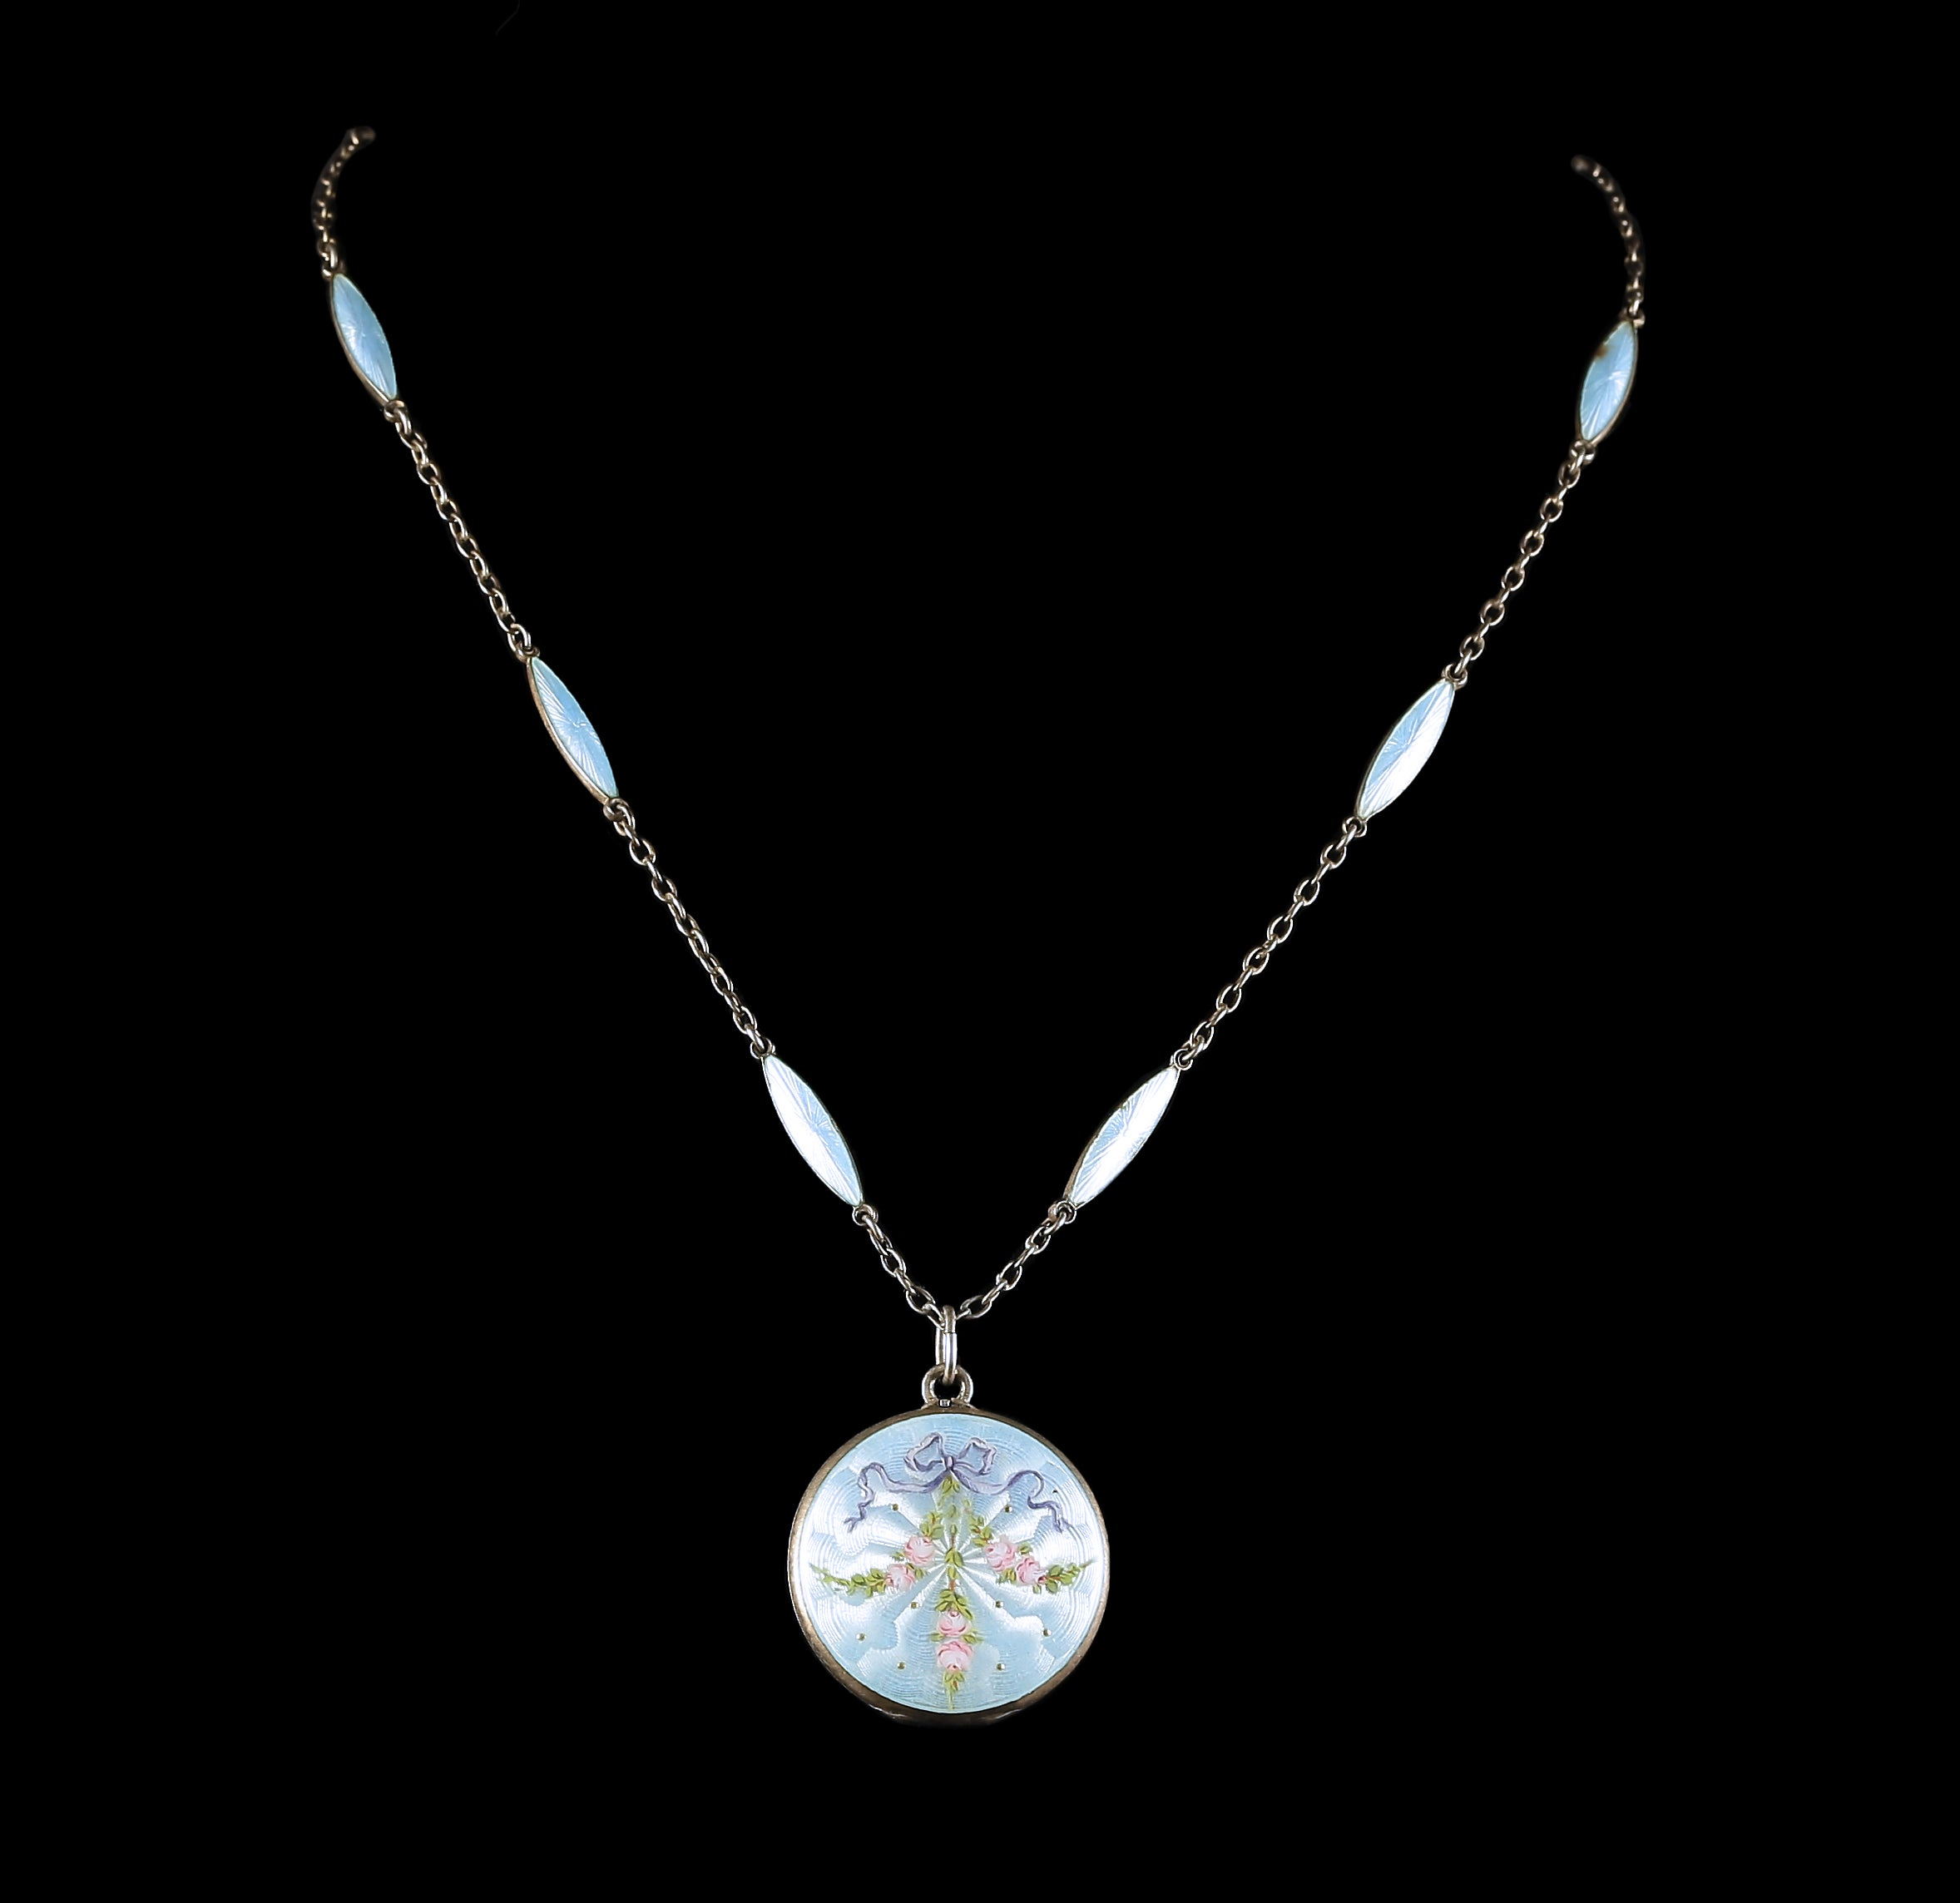 silver deco blue antique j necklaces id art topfront jewelry master drop enamel pendant at necklace